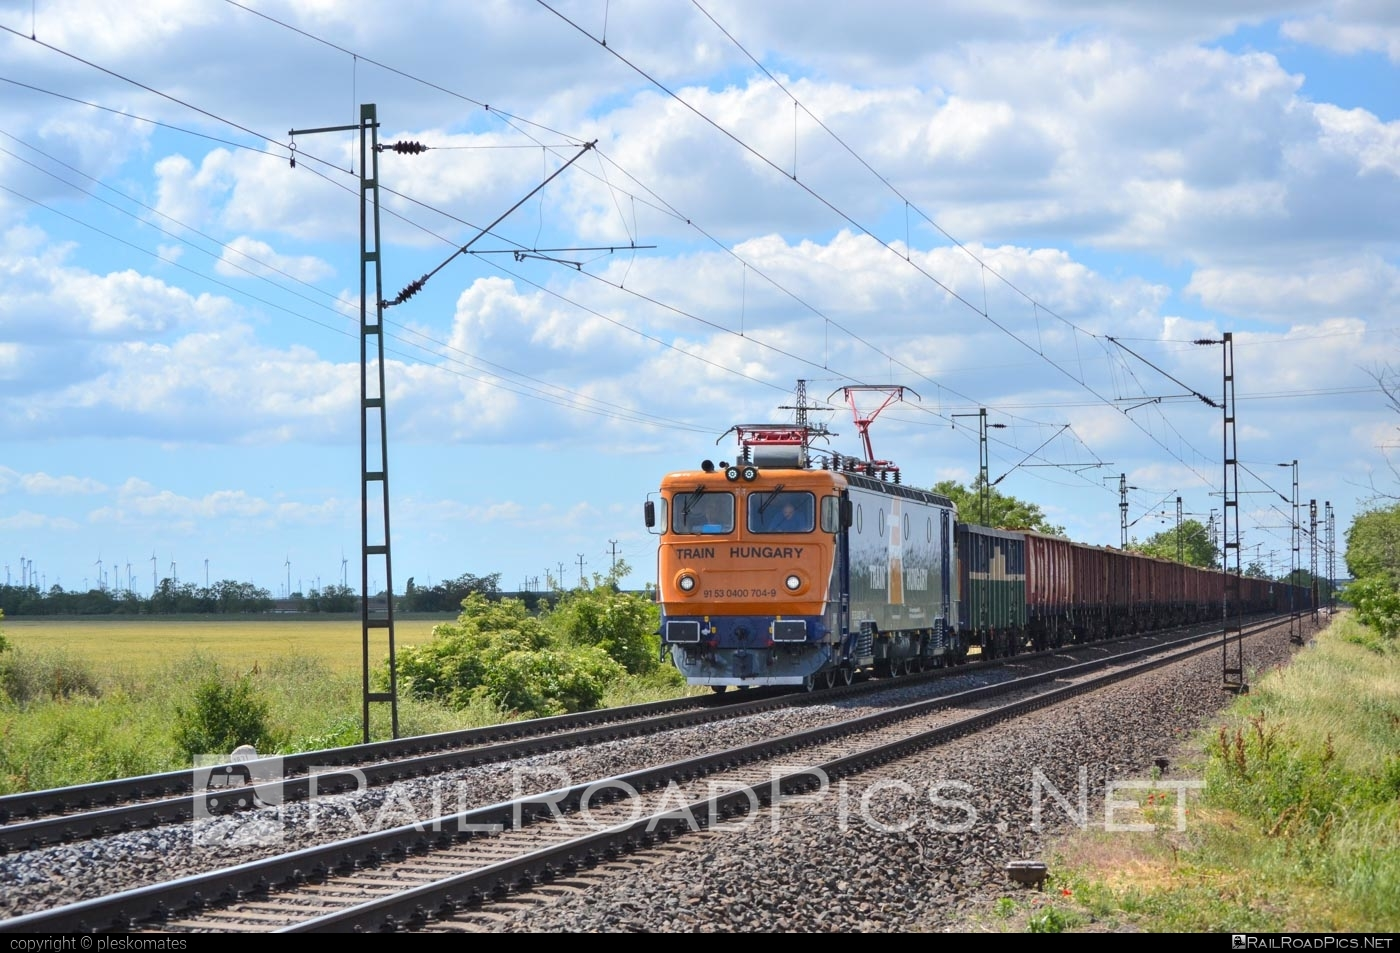 Electroputere LE 5100 - 0400 704 - 9 operated by Train Hungary Magánvasút Kft #electroputere #electroputerecraiova #electroputerele5100 #electroputerelele5100 #koncar #le5100 #openwagon